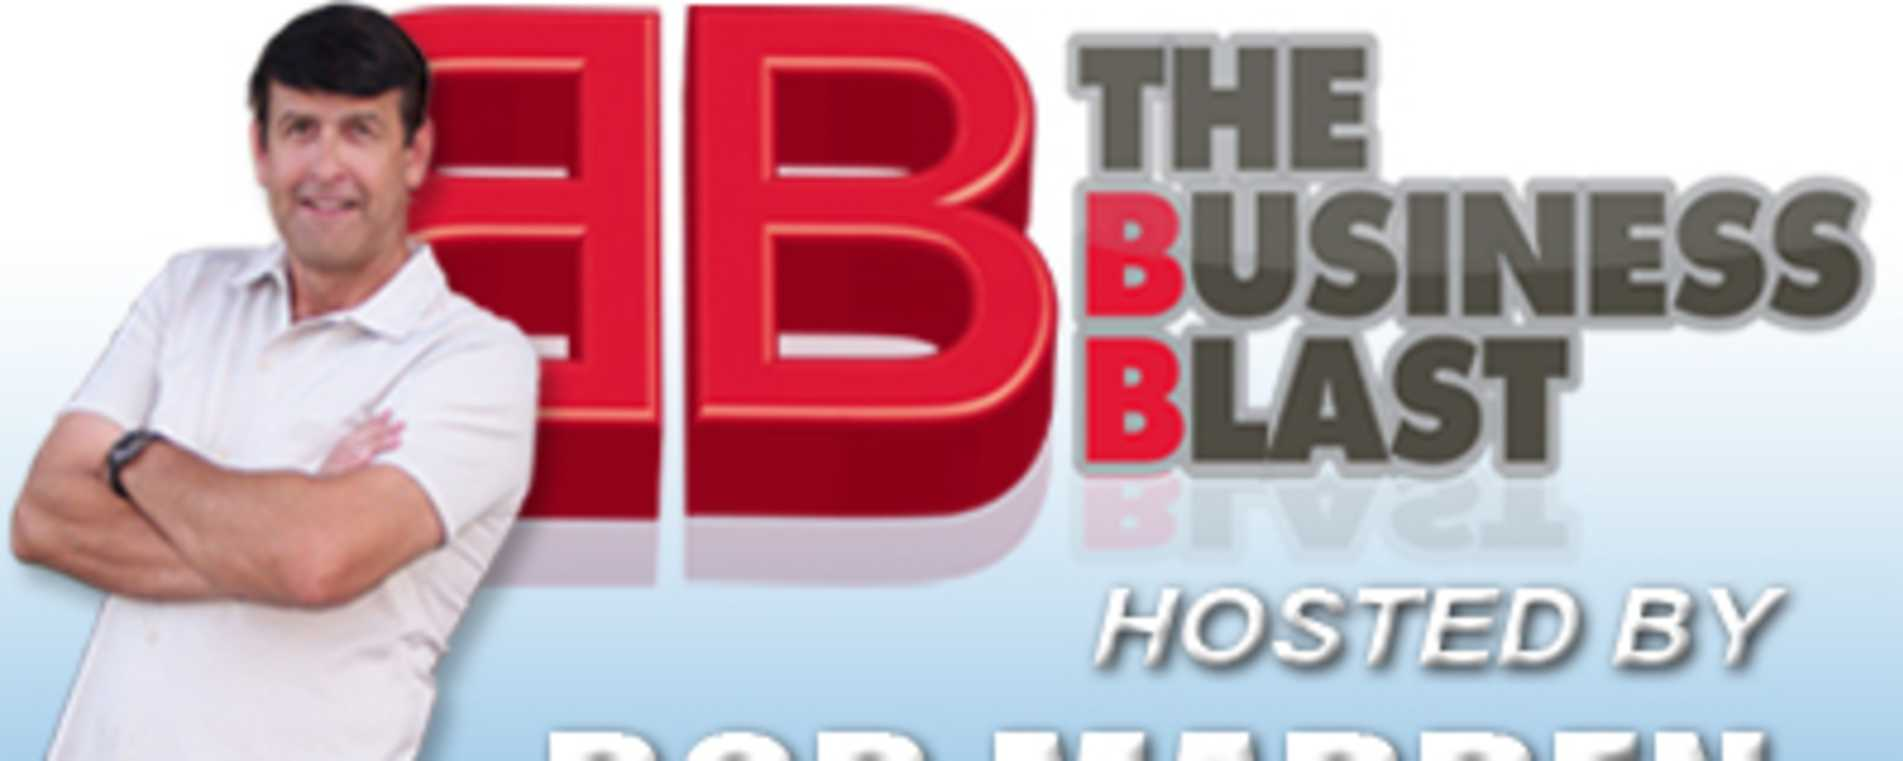 The Business Blast Ad - Temecula